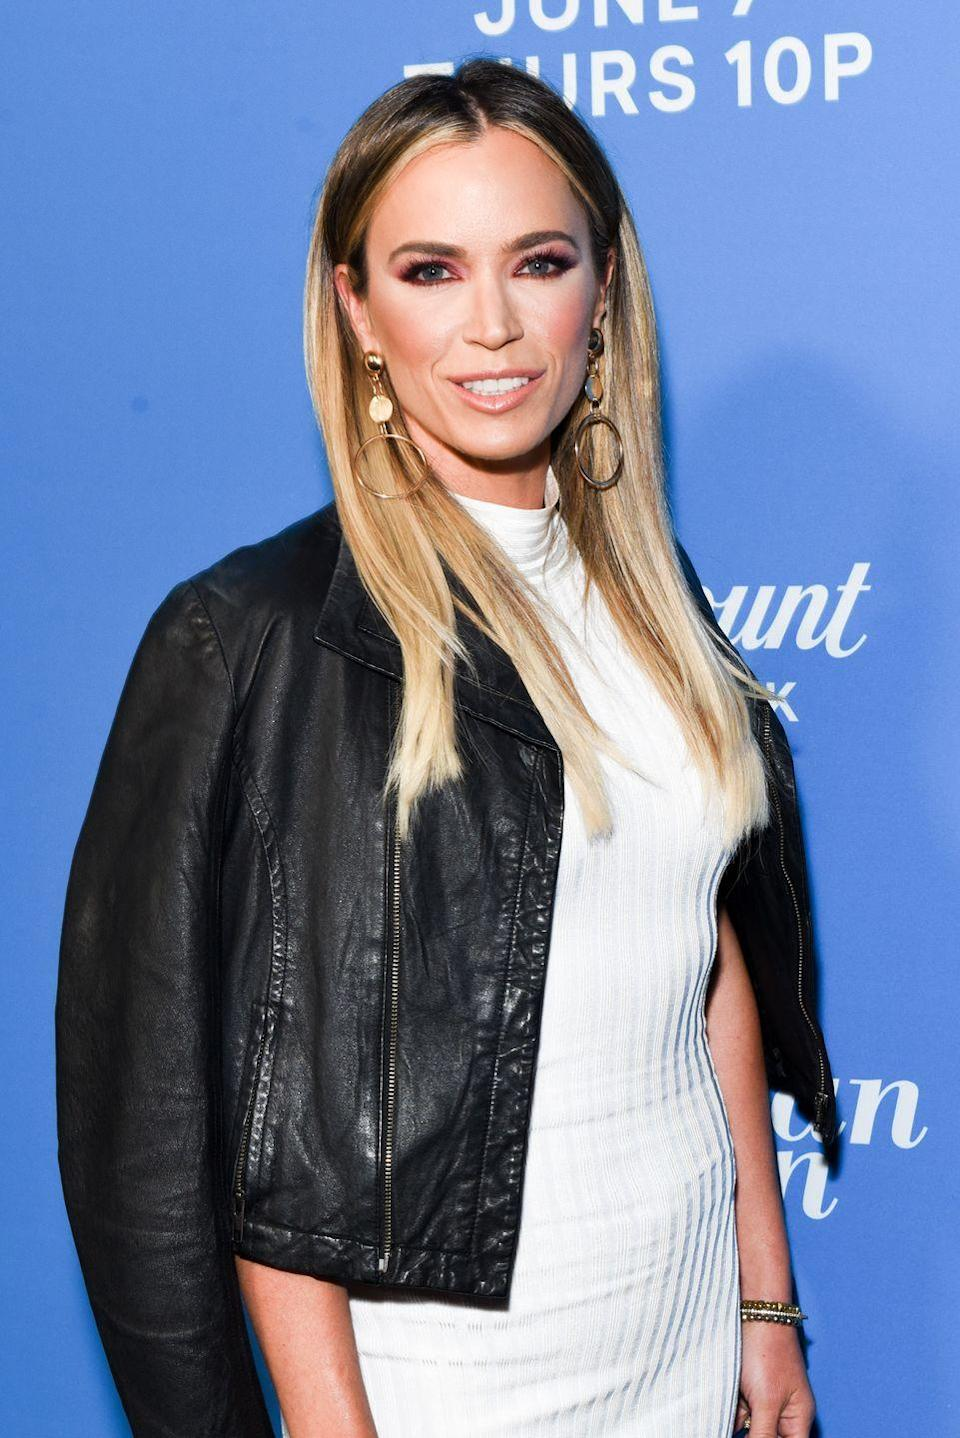 """<p>Teddi Mellencamp is the latest in a string of Housewives to fall from grace. After a rocky season 9 <em>and</em> season 10 on the <em>Real Housewives of Beverly Hills</em>, rumors flurried about her removal from the cast (there were even <a href=""""https://www.change.org/p/bravo-andycohen-fire-kyle-and-teddi-from-rhobh"""" rel=""""nofollow noopener"""" target=""""_blank"""" data-ylk=""""slk:petitions"""" class=""""link rapid-noclick-resp"""">petitions</a>). Then, shorty after season 10 wrapped, Teddi's weight loss program came under fire when clients claimed that <a href=""""https://allinbyteddi.com/"""" rel=""""nofollow noopener"""" target=""""_blank"""" data-ylk=""""slk:All In by Teddi"""" class=""""link rapid-noclick-resp"""">All In by Teddi </a>would restrict them to eating 500-1,000 calories a day. So it came as no surprise when Teddi announced on Sept. 22, 2020, that her contract had not been renewed a fourth season. </p><p>""""I figured I could give you a little update on what's going on,"""" she shared in the Instagram <a href=""""https://www.instagram.com/p/CFdMJ6bBsqM/"""" rel=""""nofollow noopener"""" target=""""_blank"""" data-ylk=""""slk:video"""" class=""""link rapid-noclick-resp"""">video</a>. """"I recently found out that my contract as a Housewife is not being renewed. Of course I could give you the standard response of, 'Oh we both came to the decision that it would be best.' Nah, I'm not going to do that — that's not who I am. Of course when I got the news I was sad. It feels like a breakup, almost."""" </p>"""